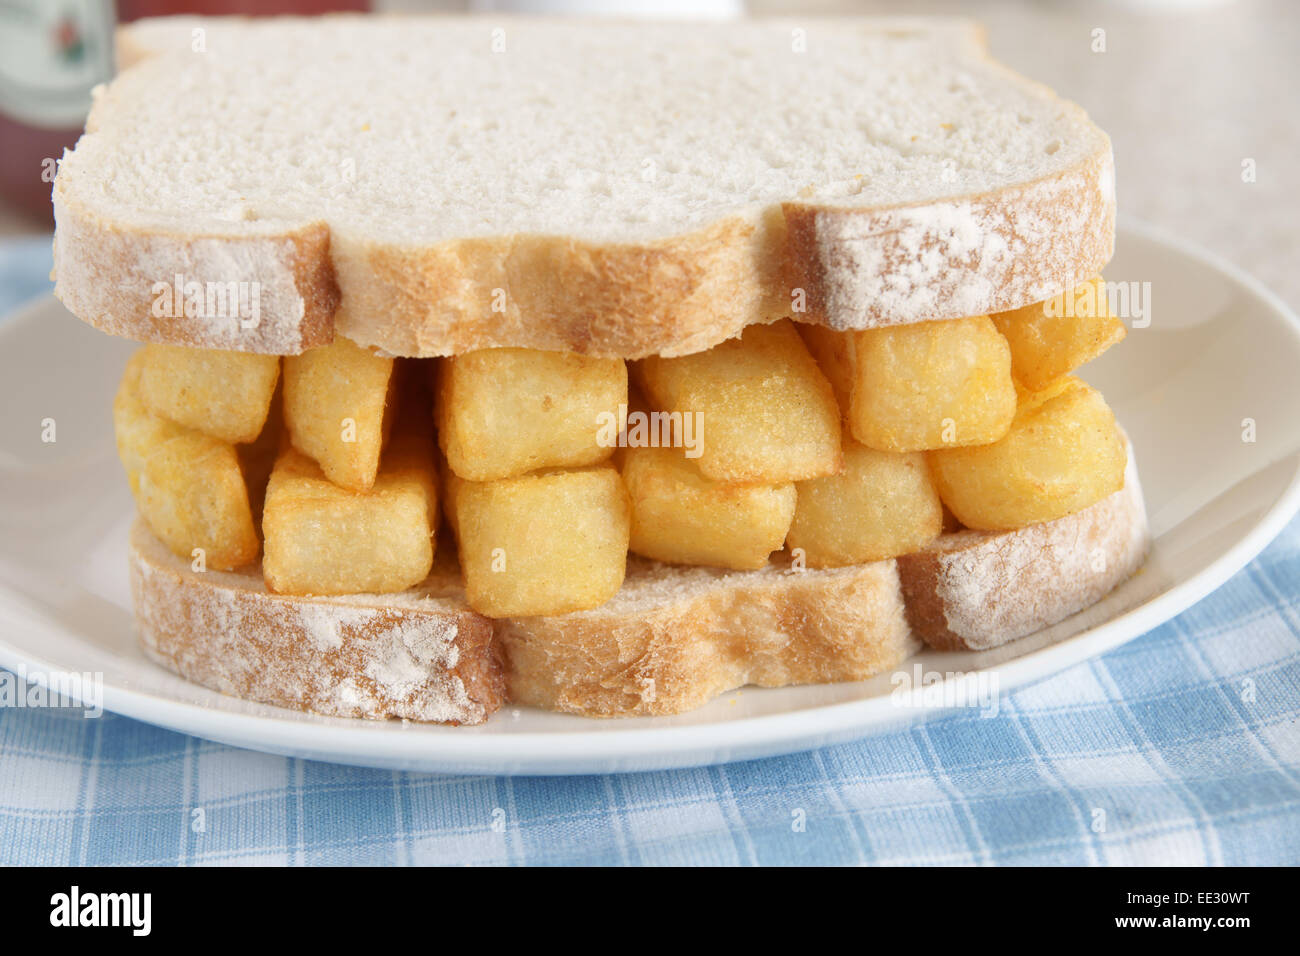 Chip Butty potato chips or fries in a sandwich - Stock Image